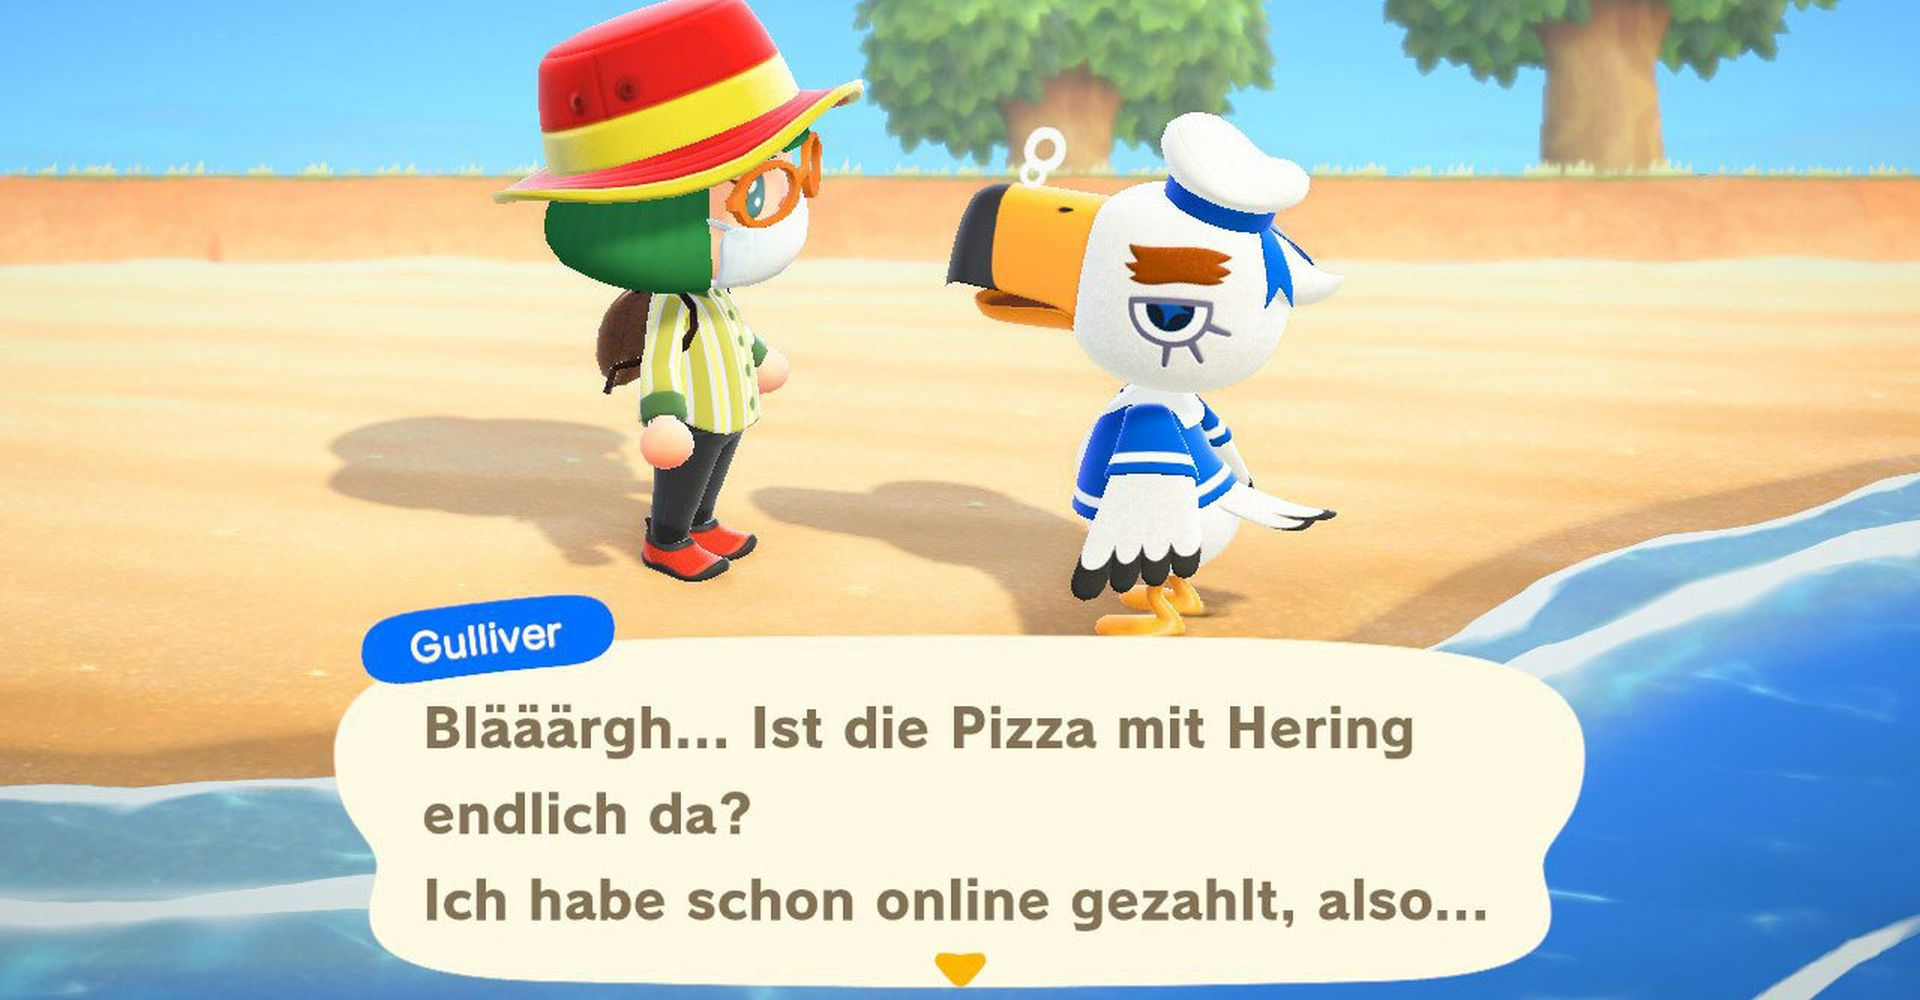 Gulliver in Animal Crossing: New Horizons treffen.